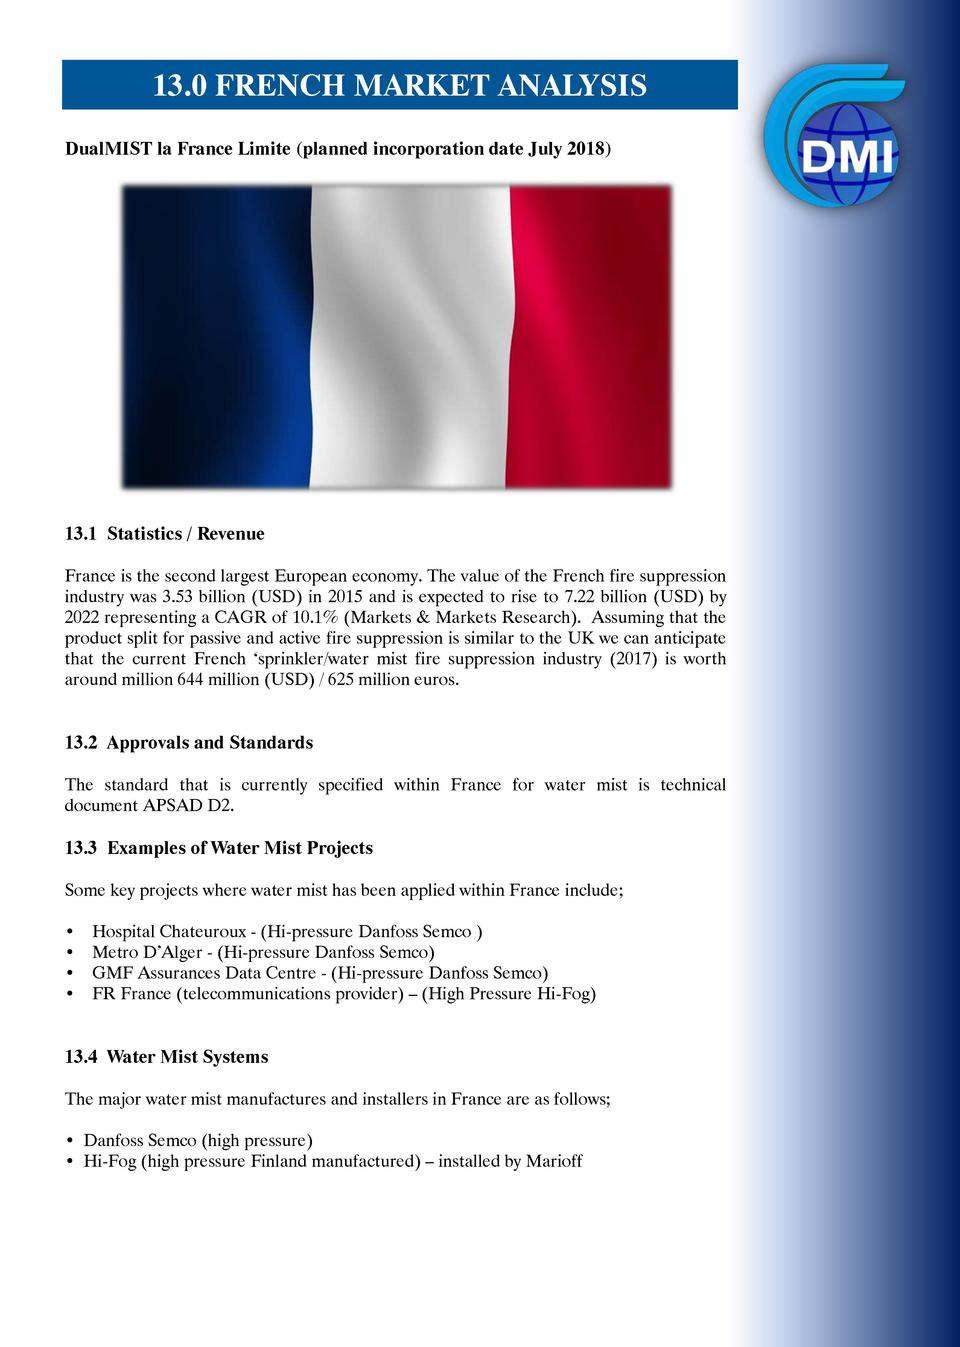 12.0 Distribution of DualMISTMARKET to France 13.0 FRENCH  ANALYSIS  DualMIST la France Limite  planned incorporation date...